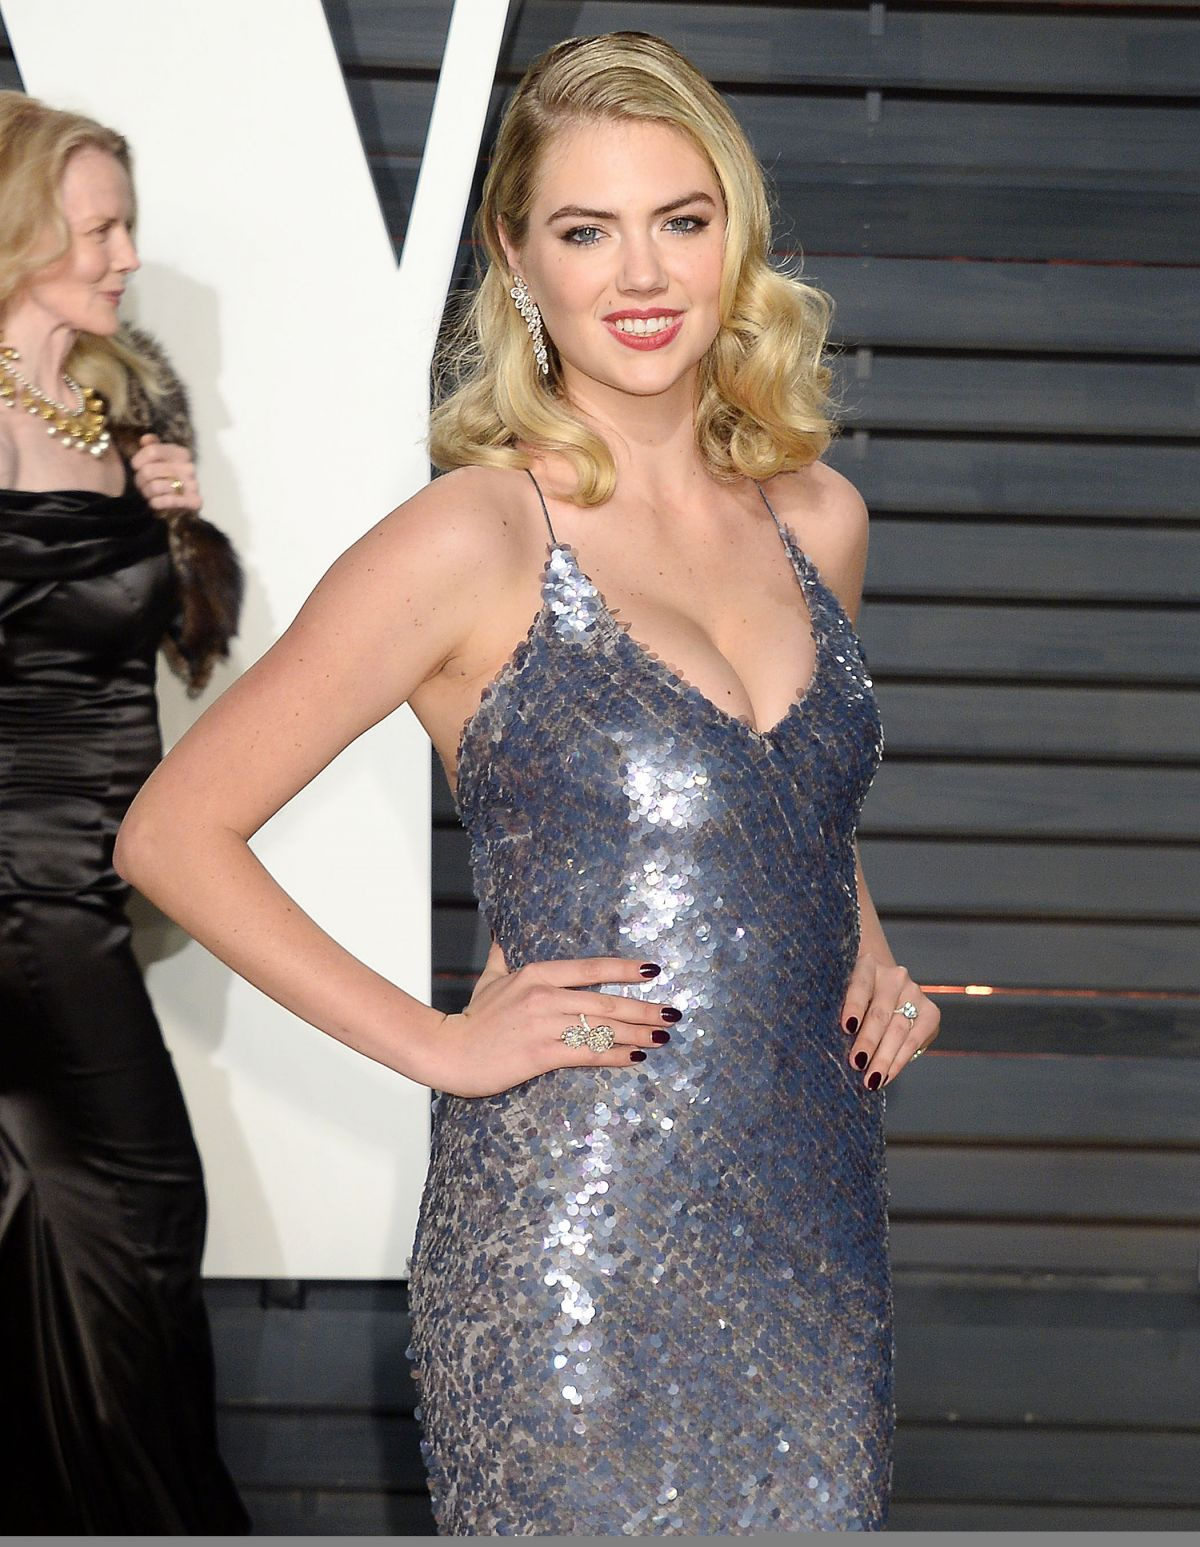 KATE UPTON at 2018 Vanity Fair Oscar Party in Beverly